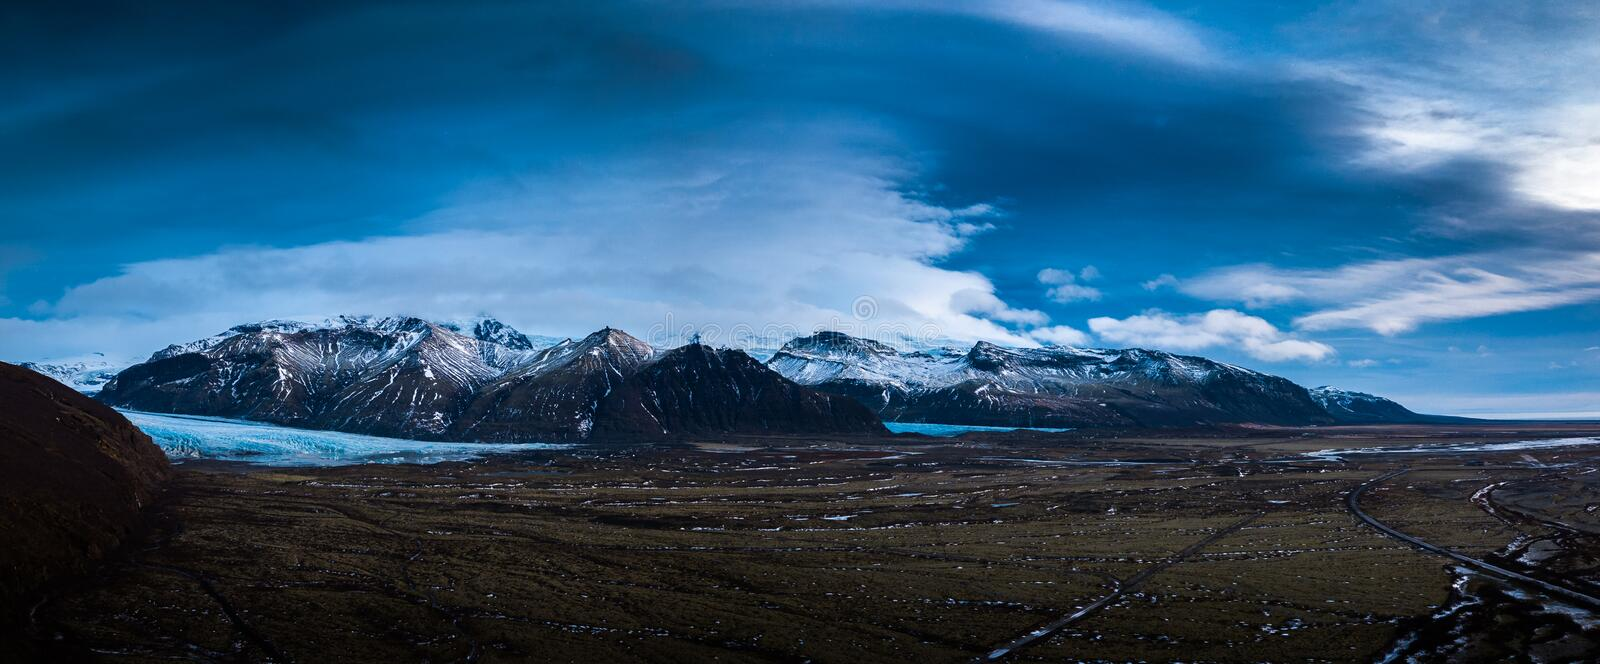 Iceland landscape. Panoramic view of the Iceland landscape with a snowy mountain range in the distance under a dark clouds sky royalty free stock photo